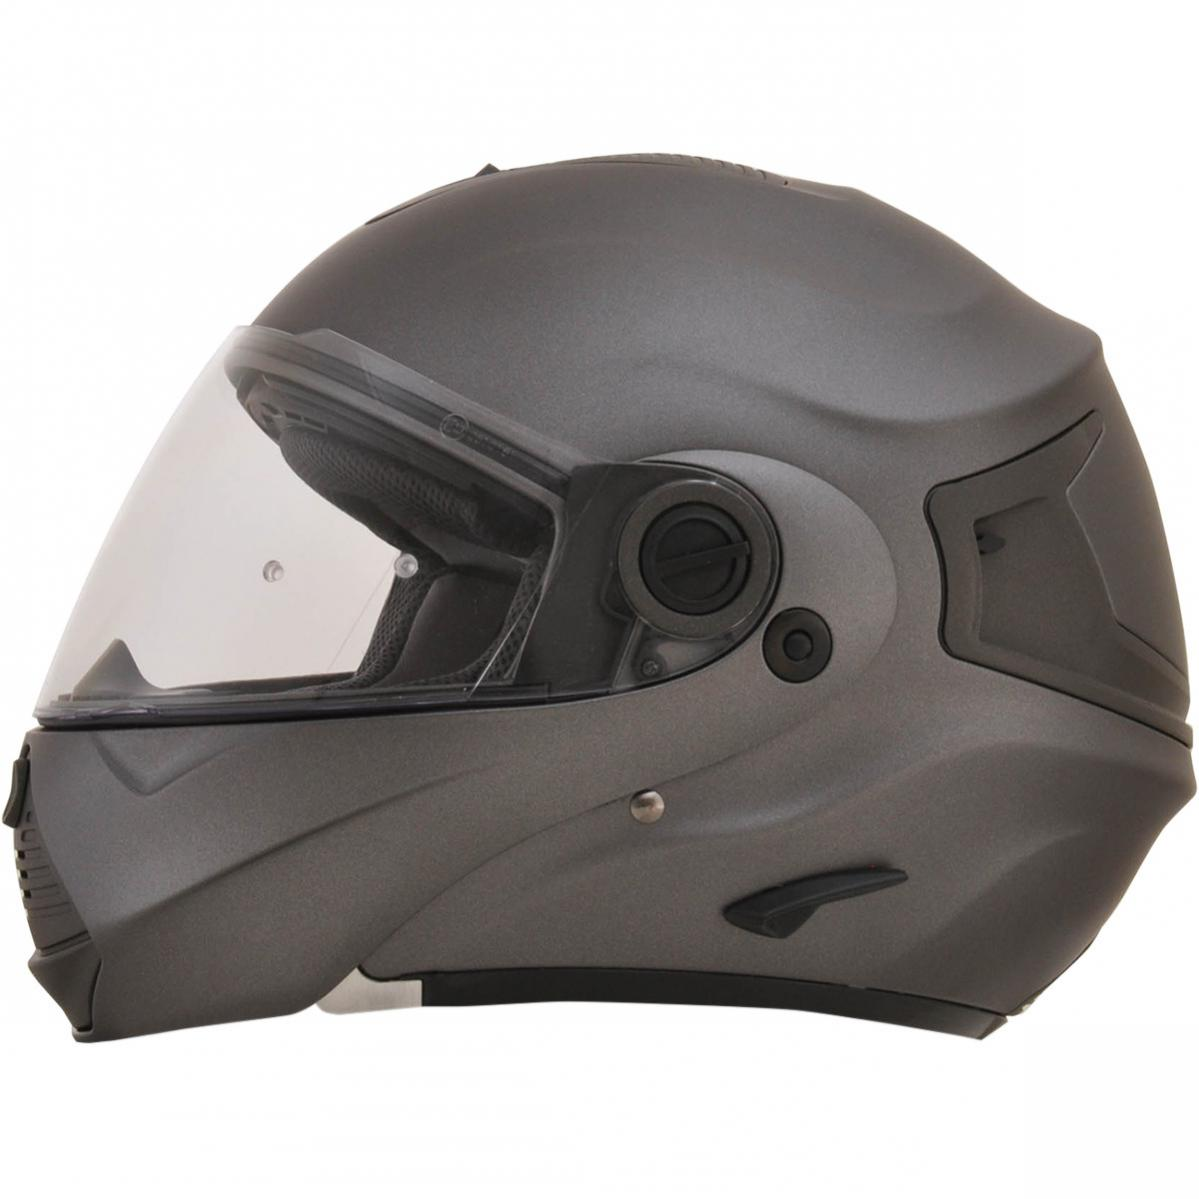 What kind of helmets do you guys wear?-01001458.jpg